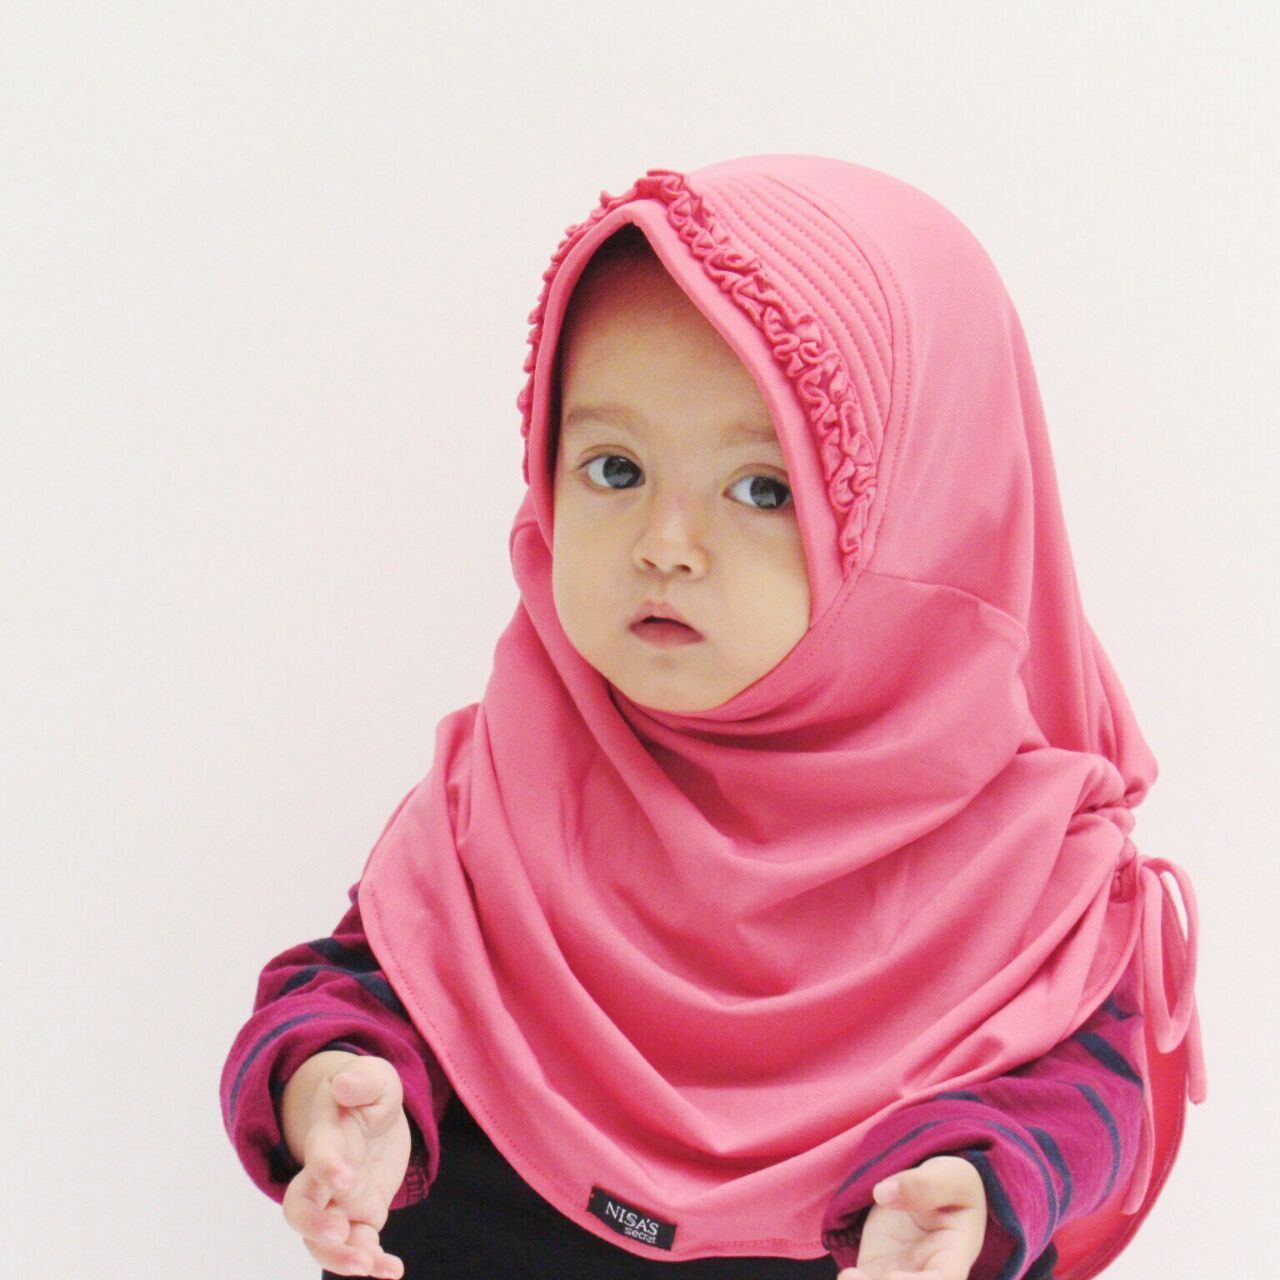 Pin By Little Jhe On Jilbab Bayi Pinterest